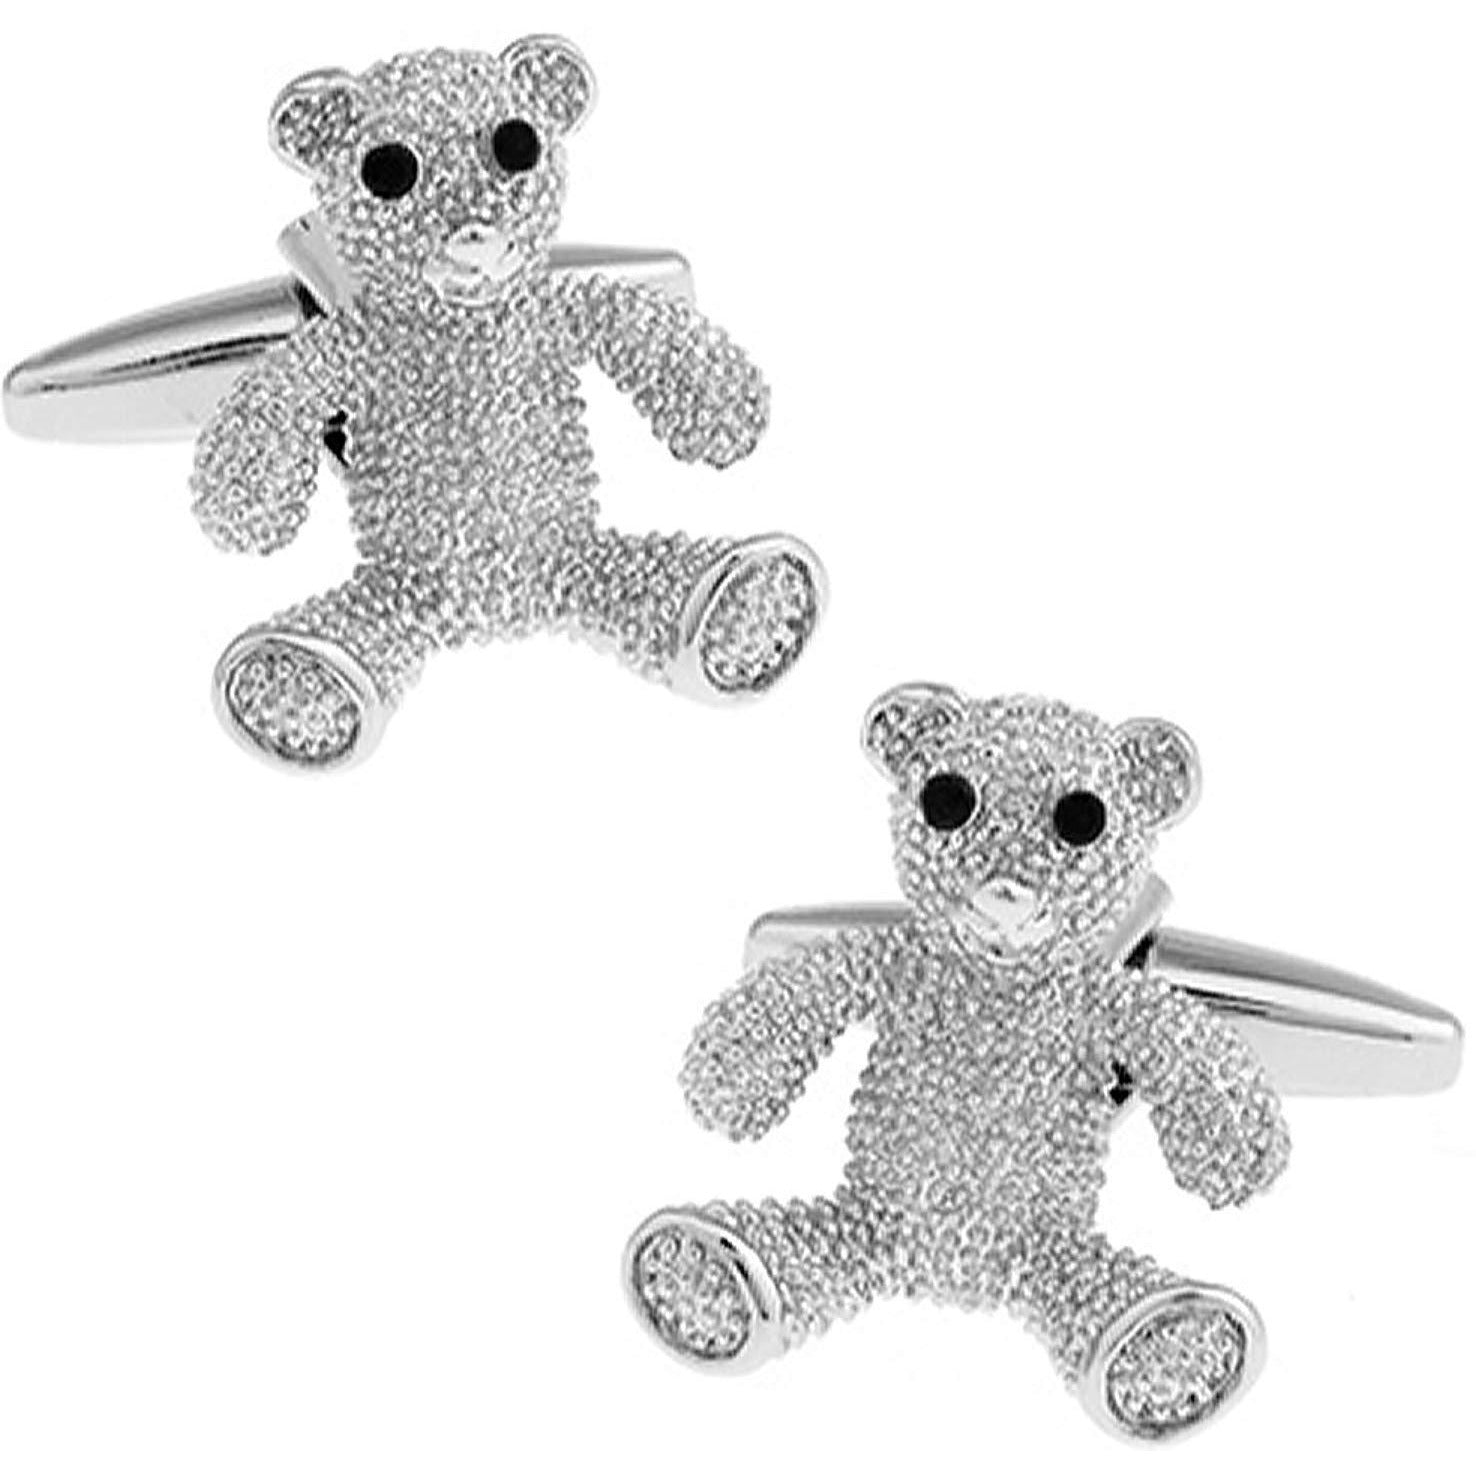 Silver Teddy Bear Cufflinks